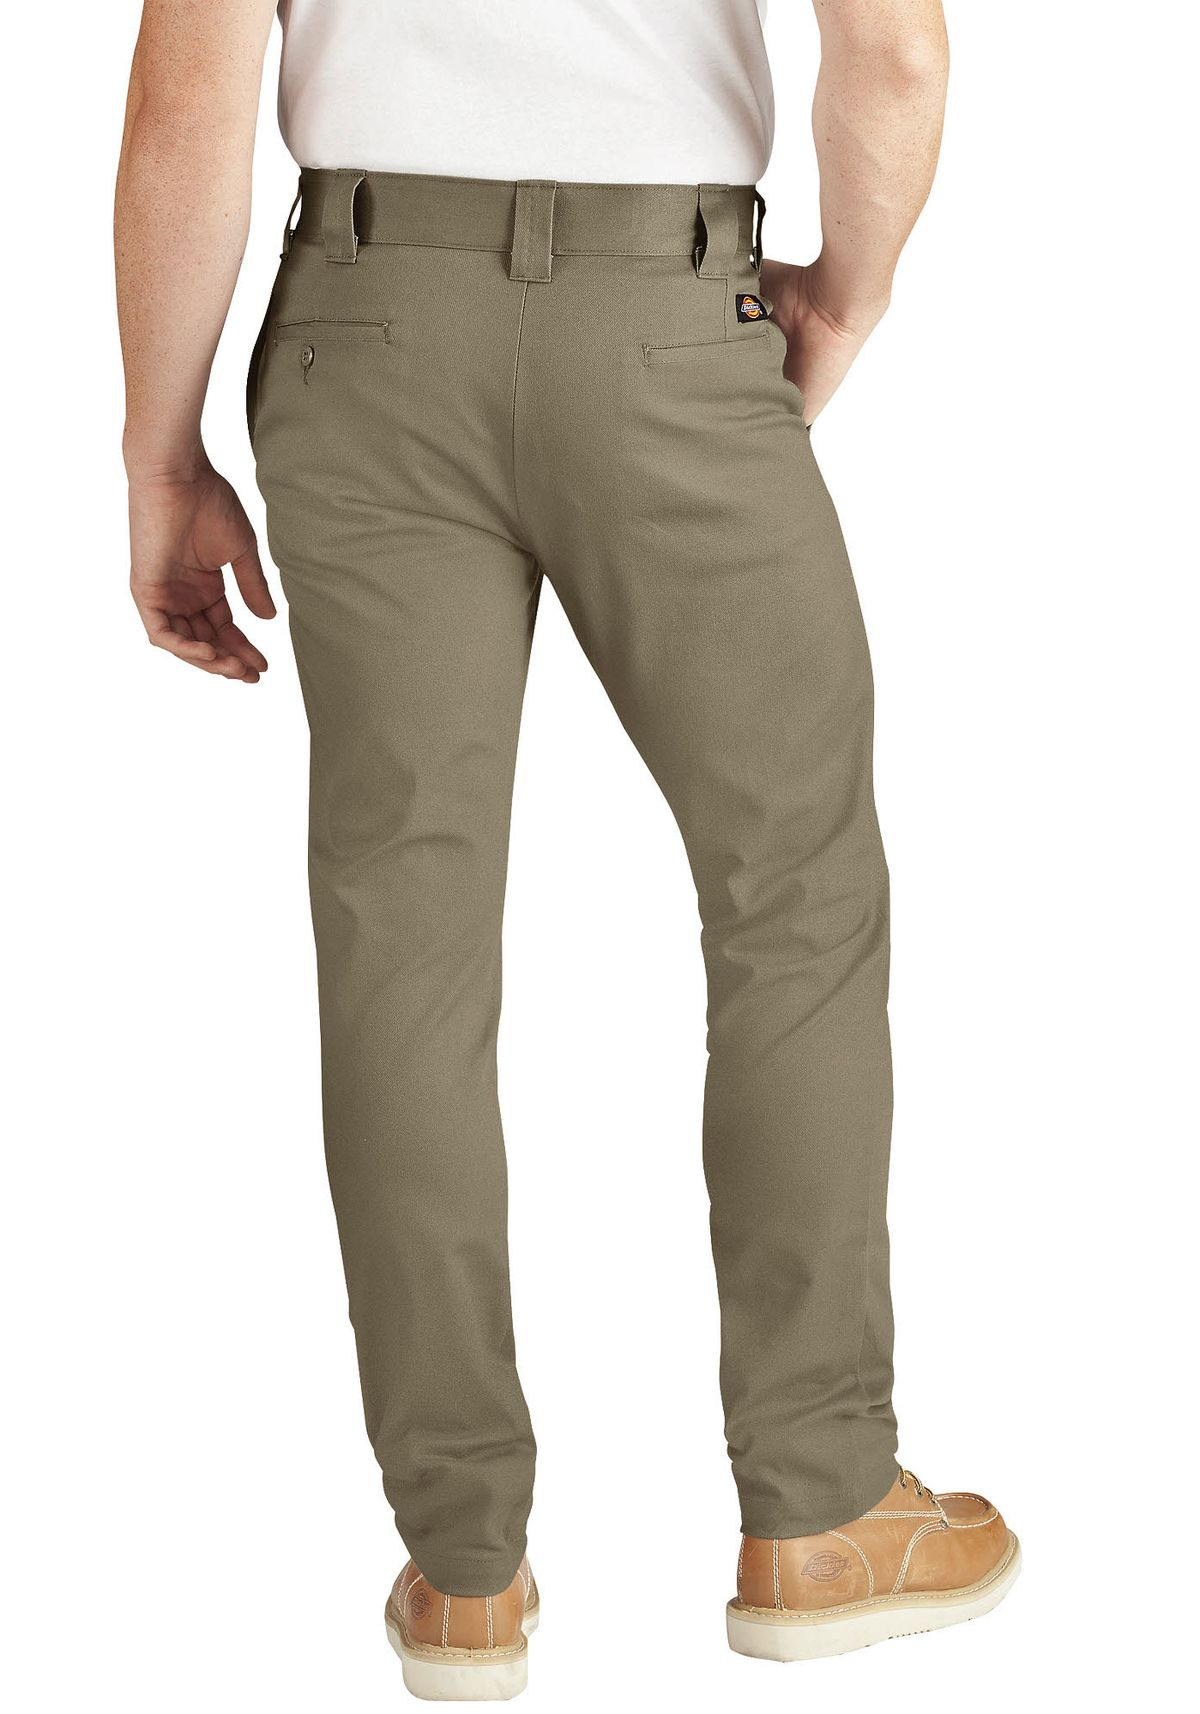 Men's Pants: Free Shipping on orders over $45 at 0549sahibi.tk - Your Online Men's Clothing Store! Get 5% in rewards with Club O! skip to main content. Registries Gift Cards. Outback Rider Men's Solid Twill Cargo Pant. Free Shipping & Returns with Club O Gold* 80 Reviews. More Options.